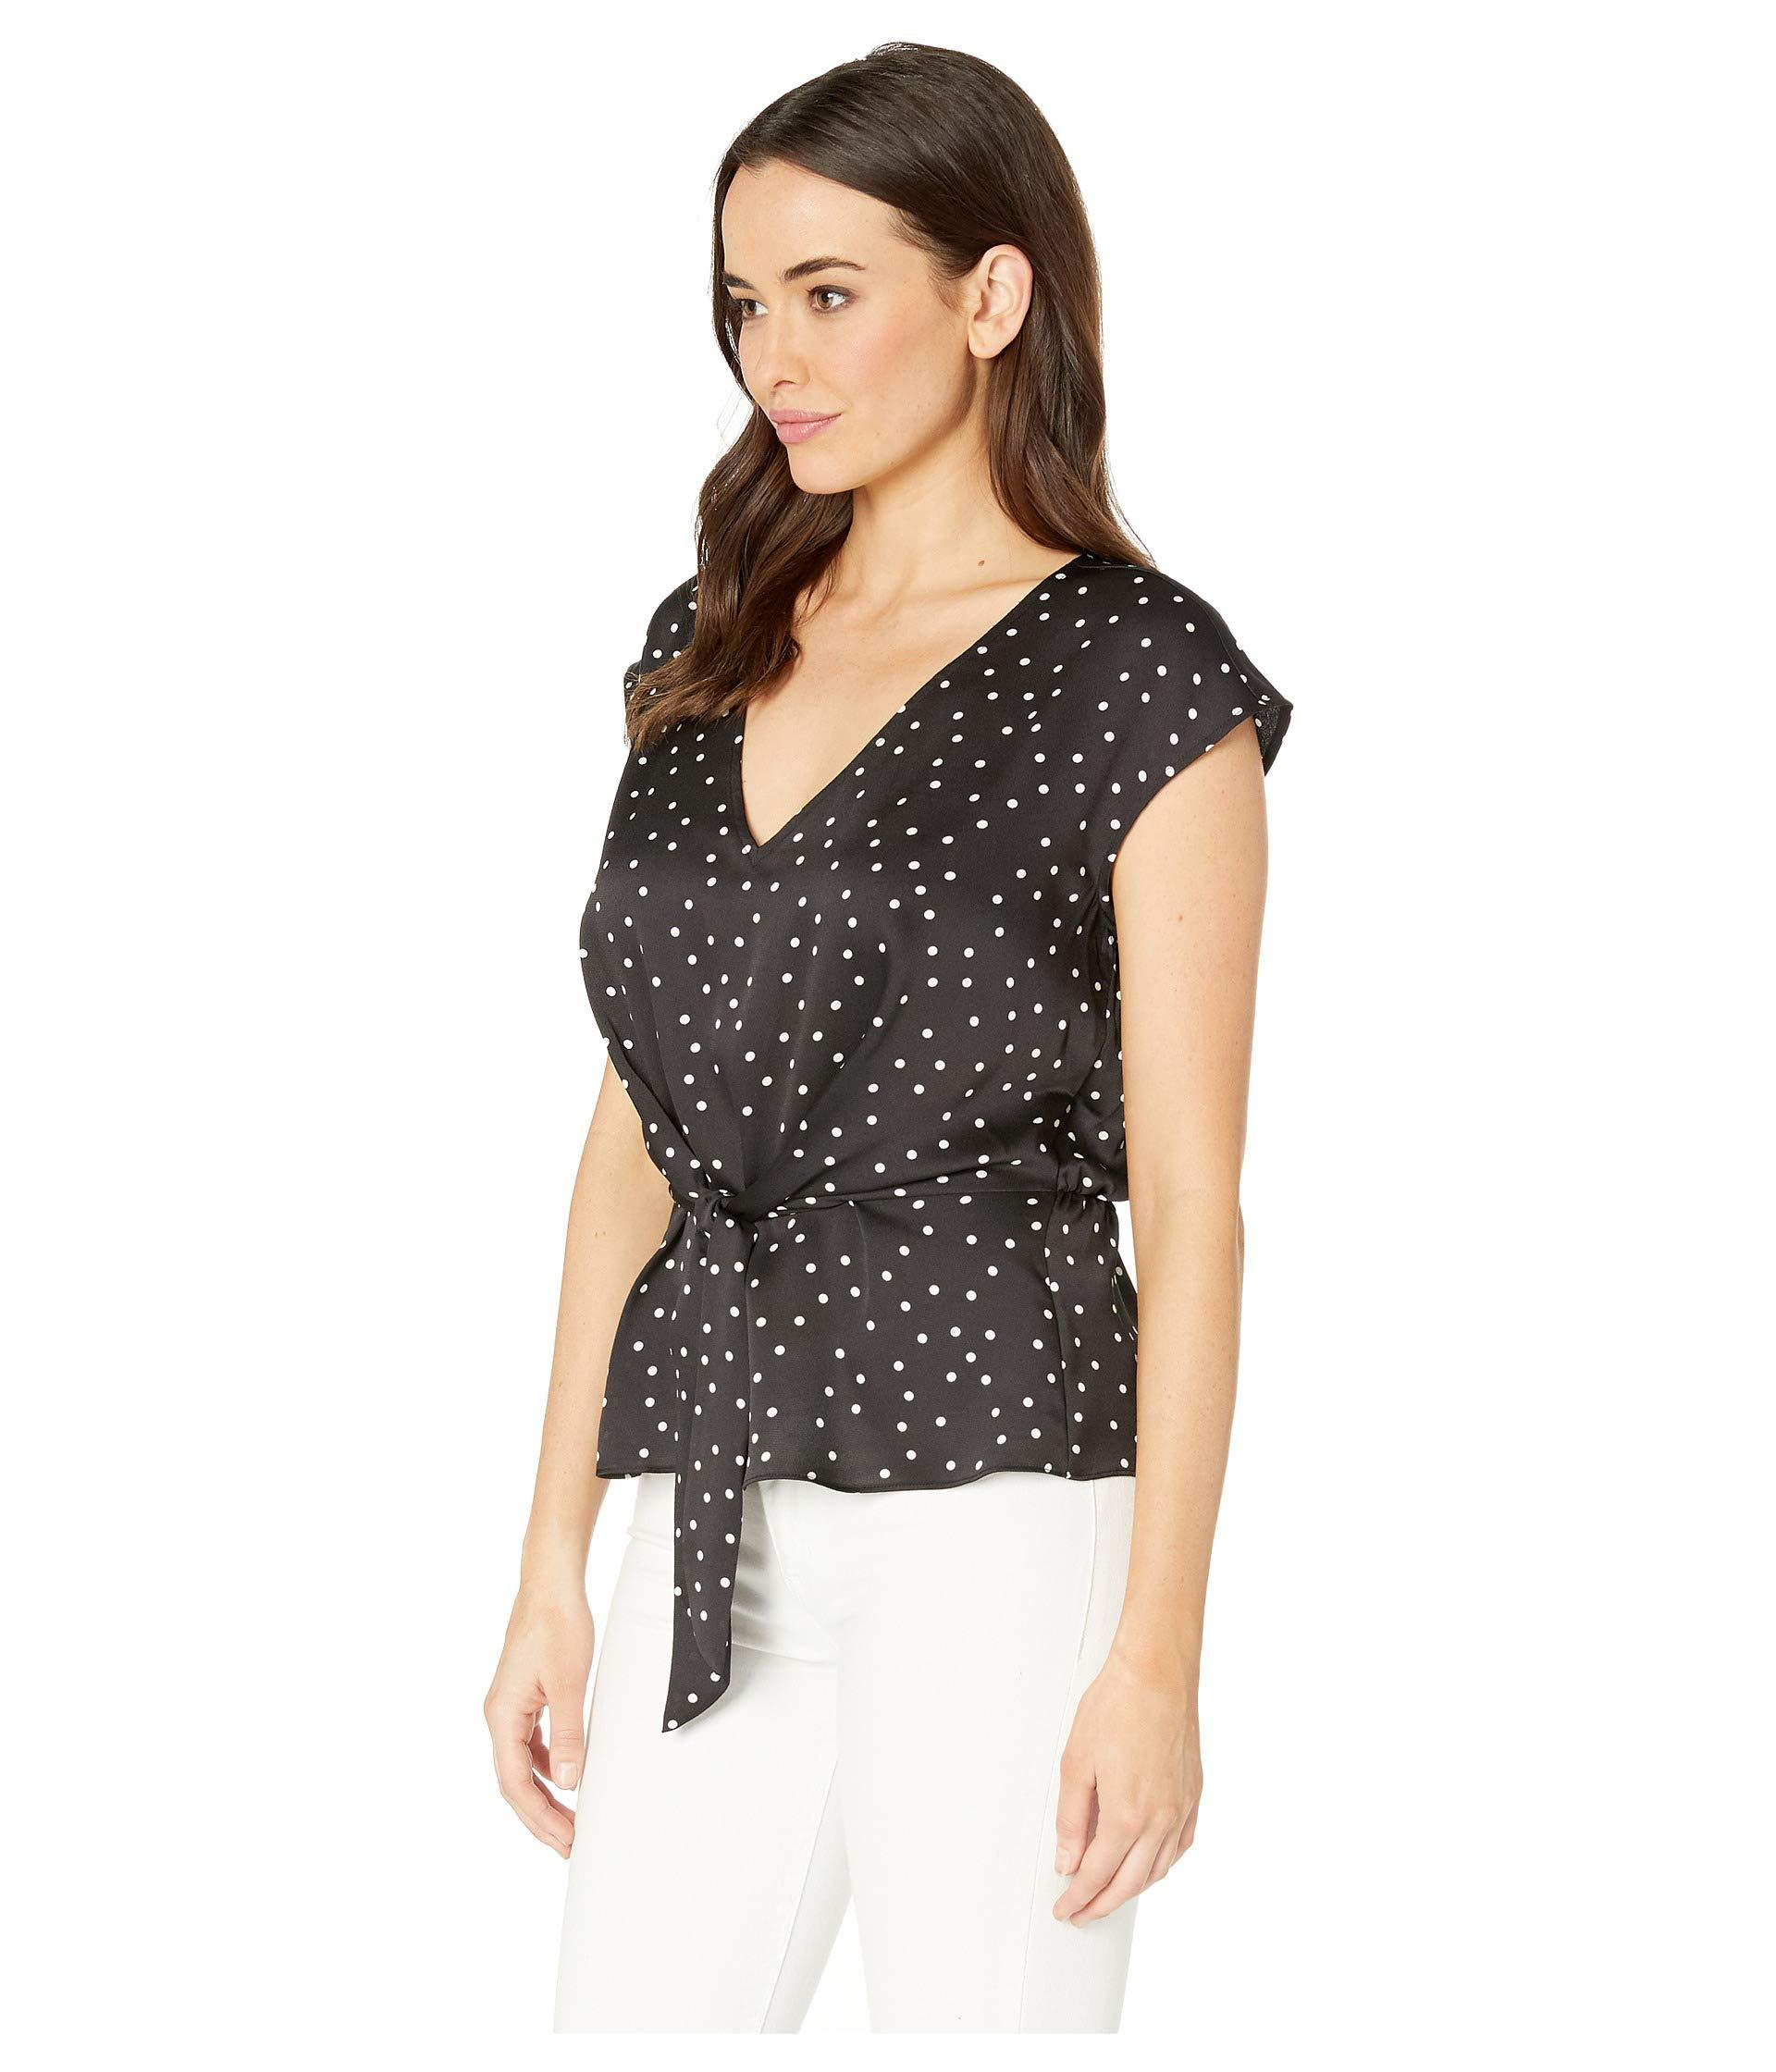 53cac44b51c0bf Lyst - Vince Camuto Extend Shoulder Crisp Polka Dot Tie Front Blouse (rich  Black) Women s Blouse in Black